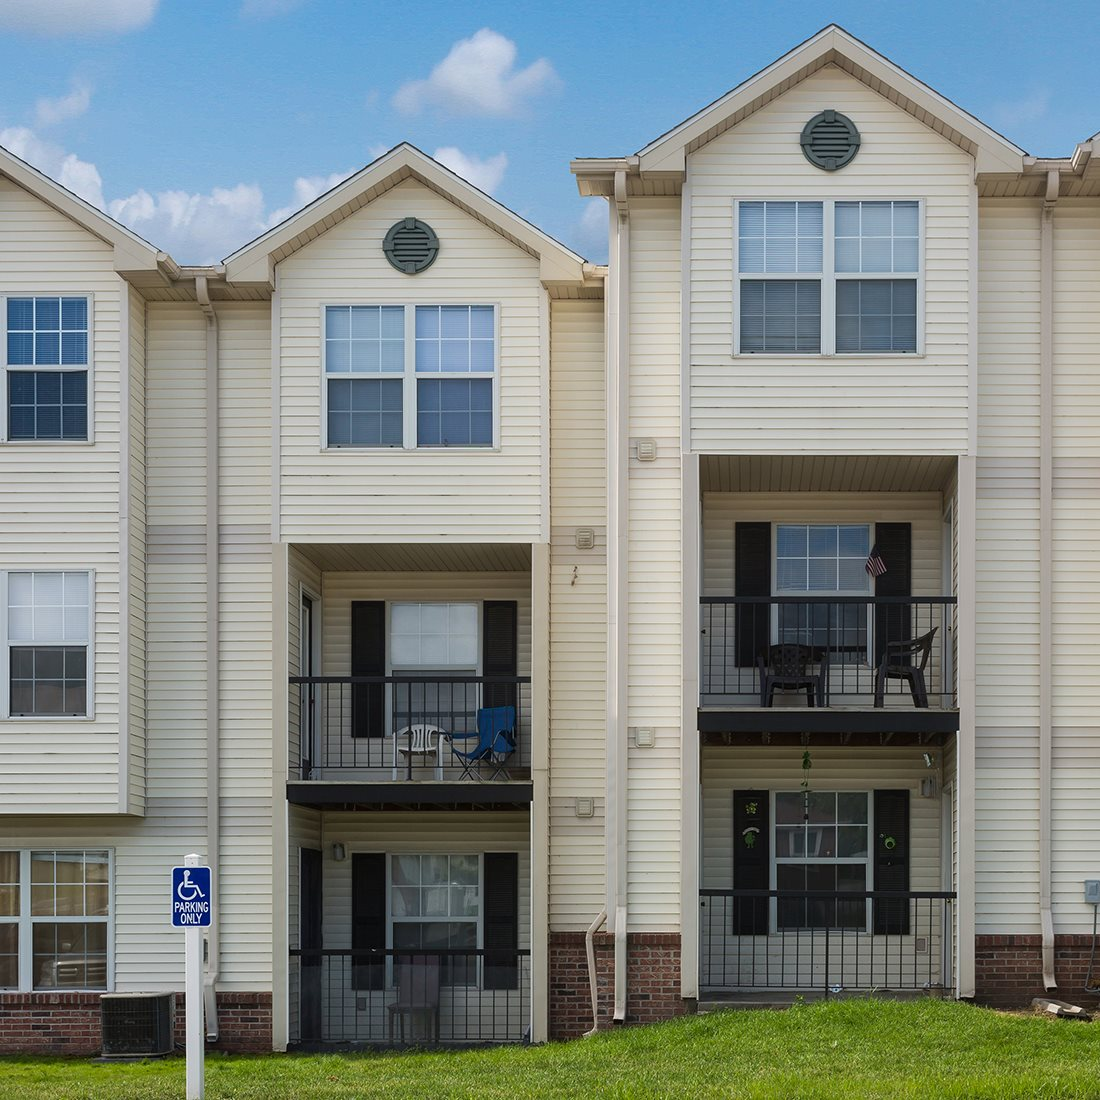 Lincoln Ne Apartments: Photos And Video Of Bridgeport Apartments In Lincoln, NE